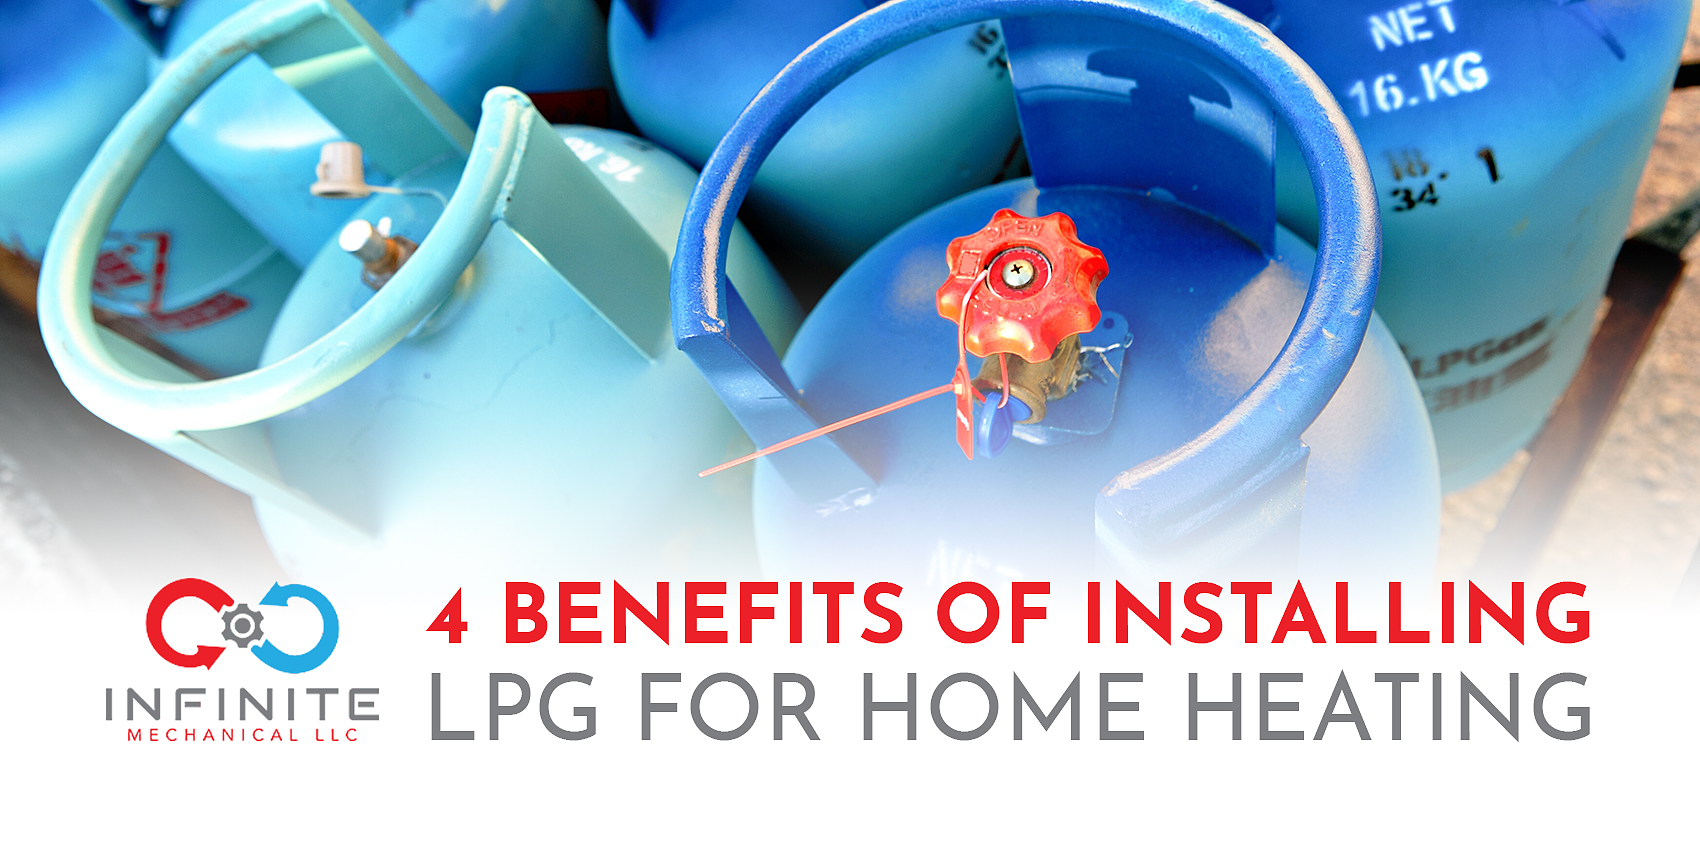 4 Benefits of Installing LPG For Home Heating